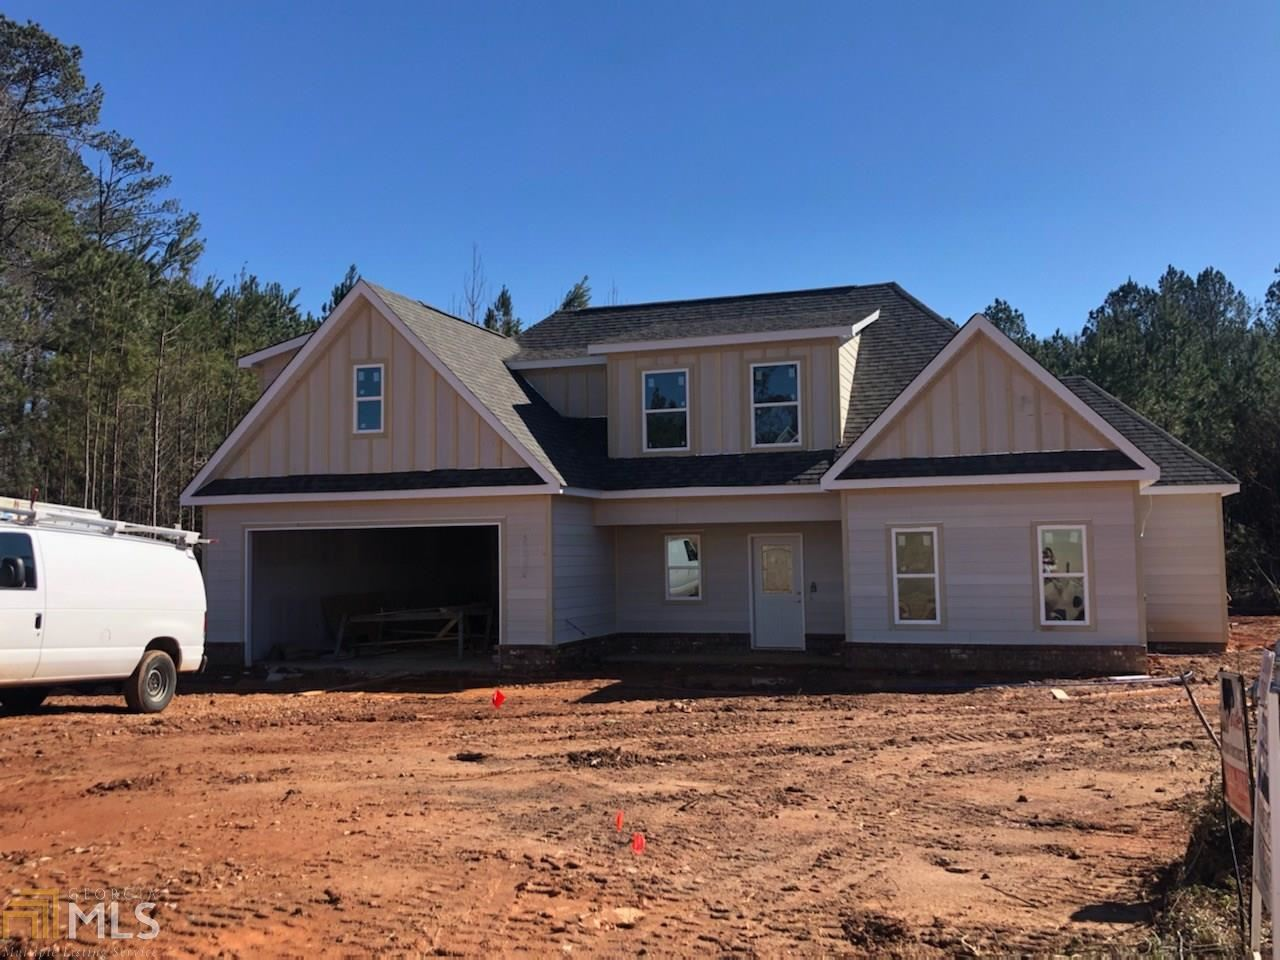 192 Piedmont Lake Dr, Gray, GA 31032 - MLS#: 8920274